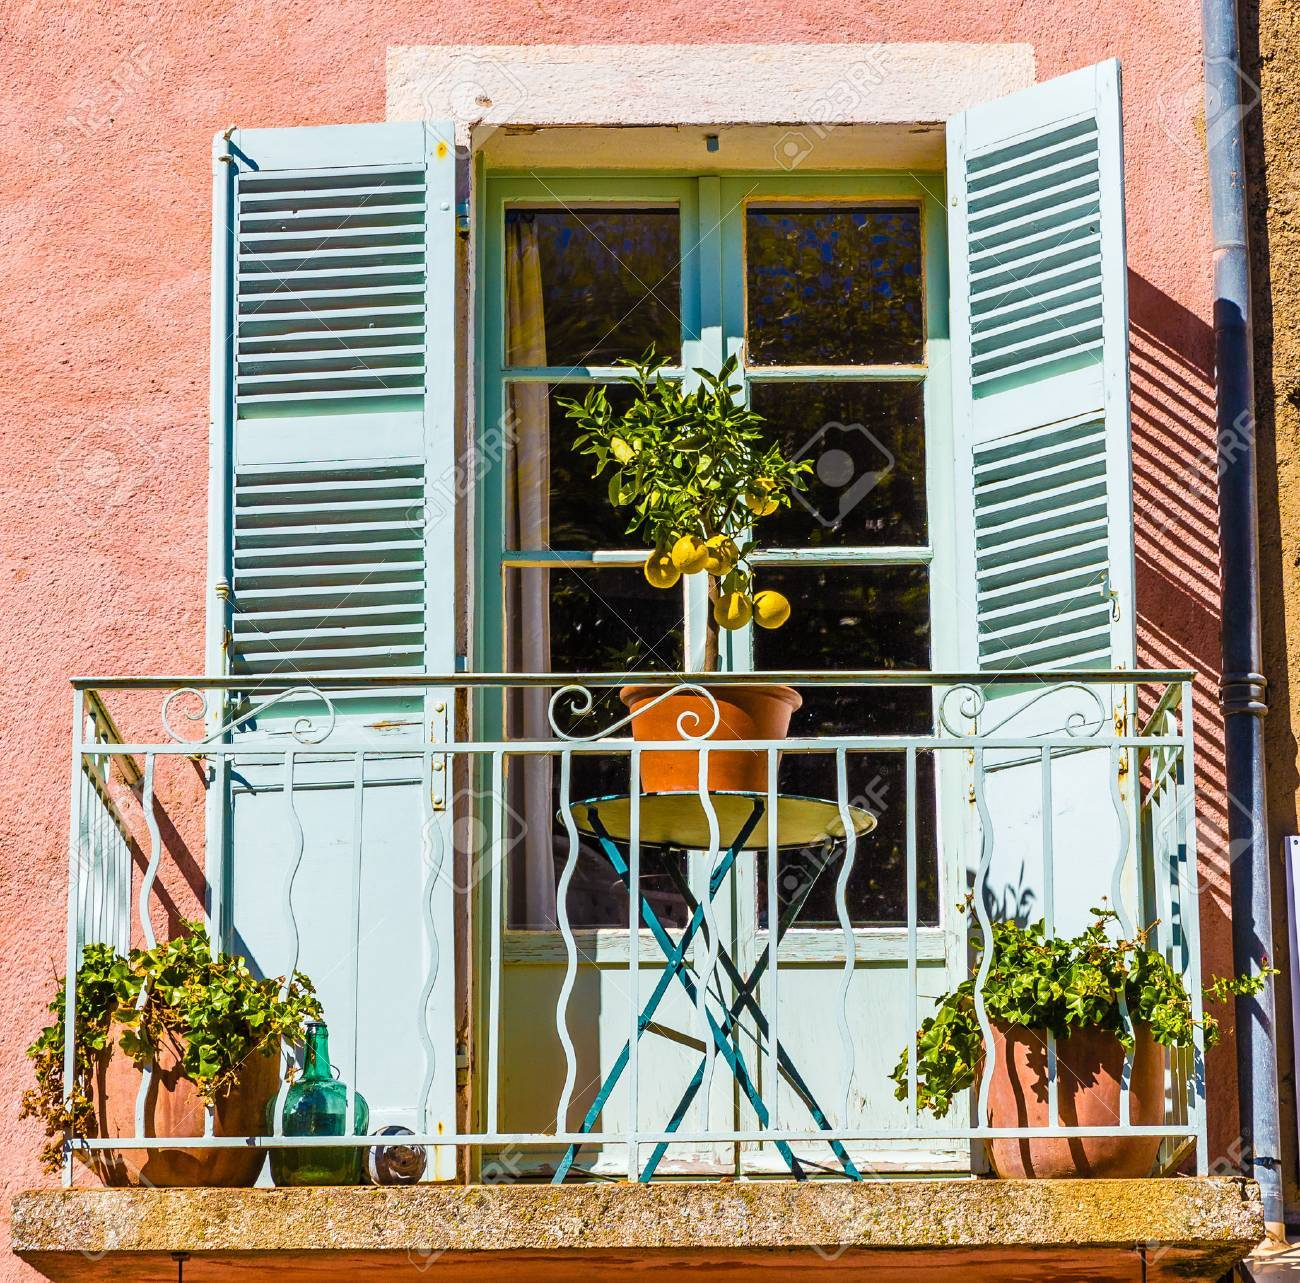 Detail Of Balcony With Green Door And Small Lemon Tree On The Table-Tourtour,France,Europe - 50455572